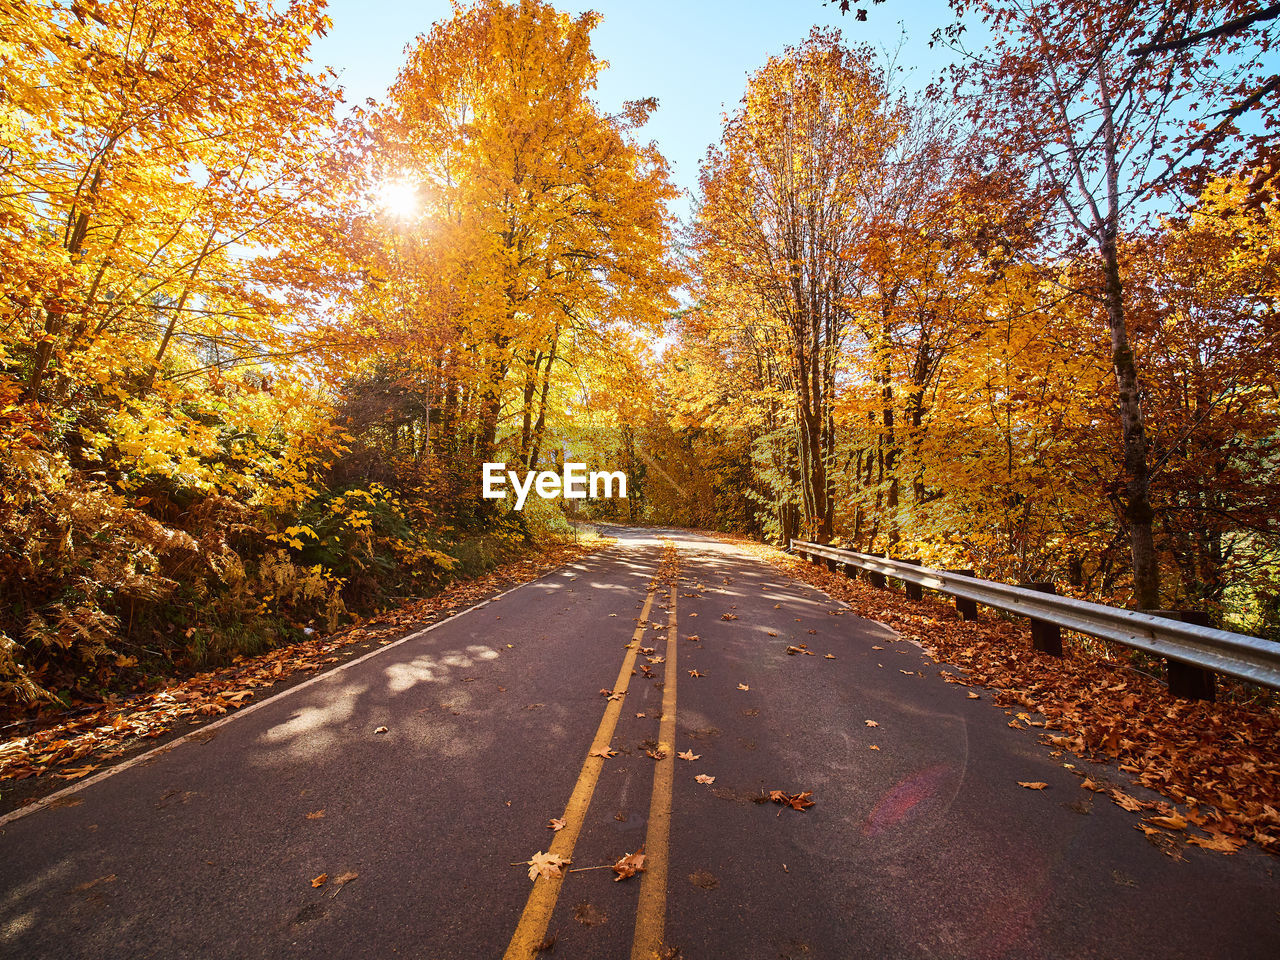 autumn, tree, change, direction, the way forward, plant, road, transportation, nature, no people, day, orange color, leaf, beauty in nature, diminishing perspective, plant part, marking, road marking, tranquility, growth, outdoors, fall, dividing line